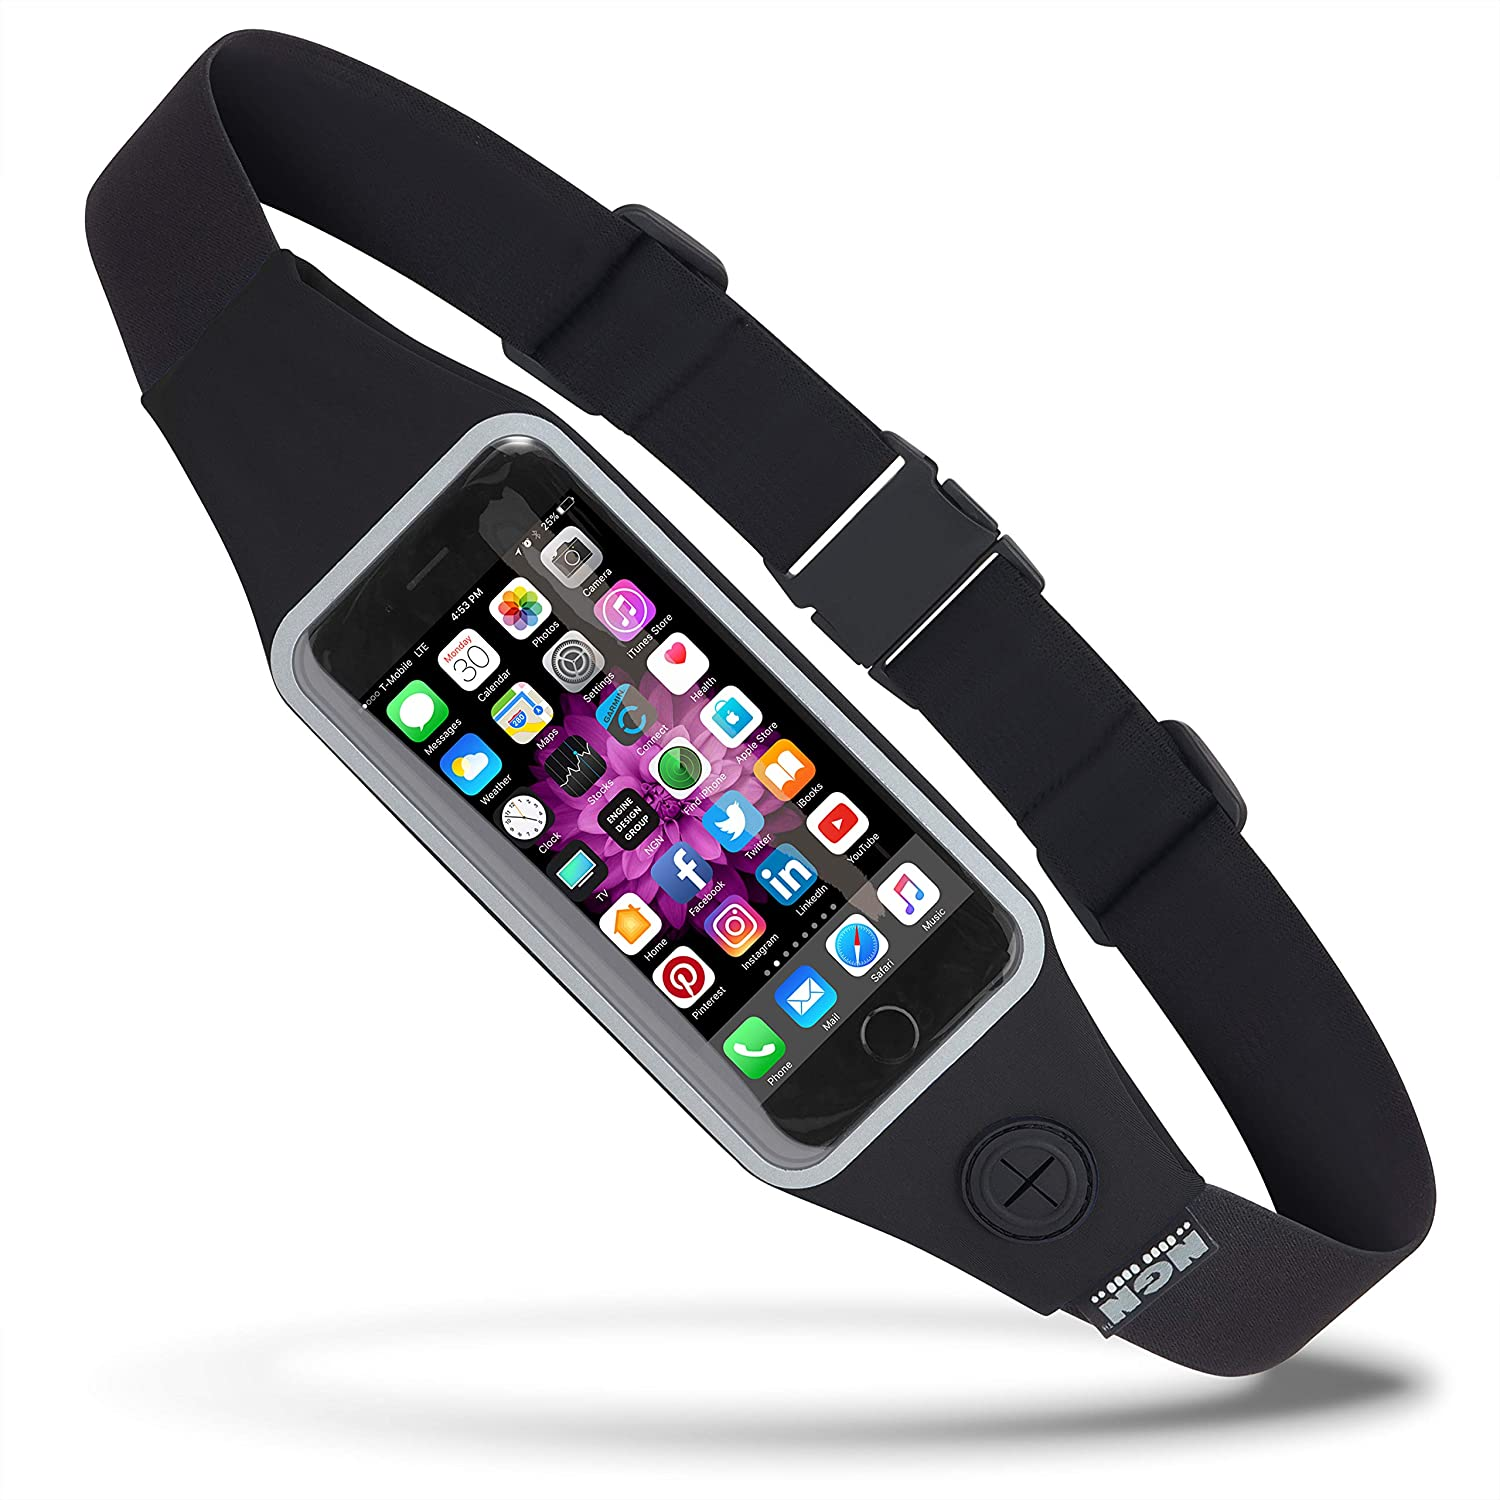 NGN Sport – Running Belt/Waist Pack/Fitness Belt for iPhone, Android and Most Smartphones